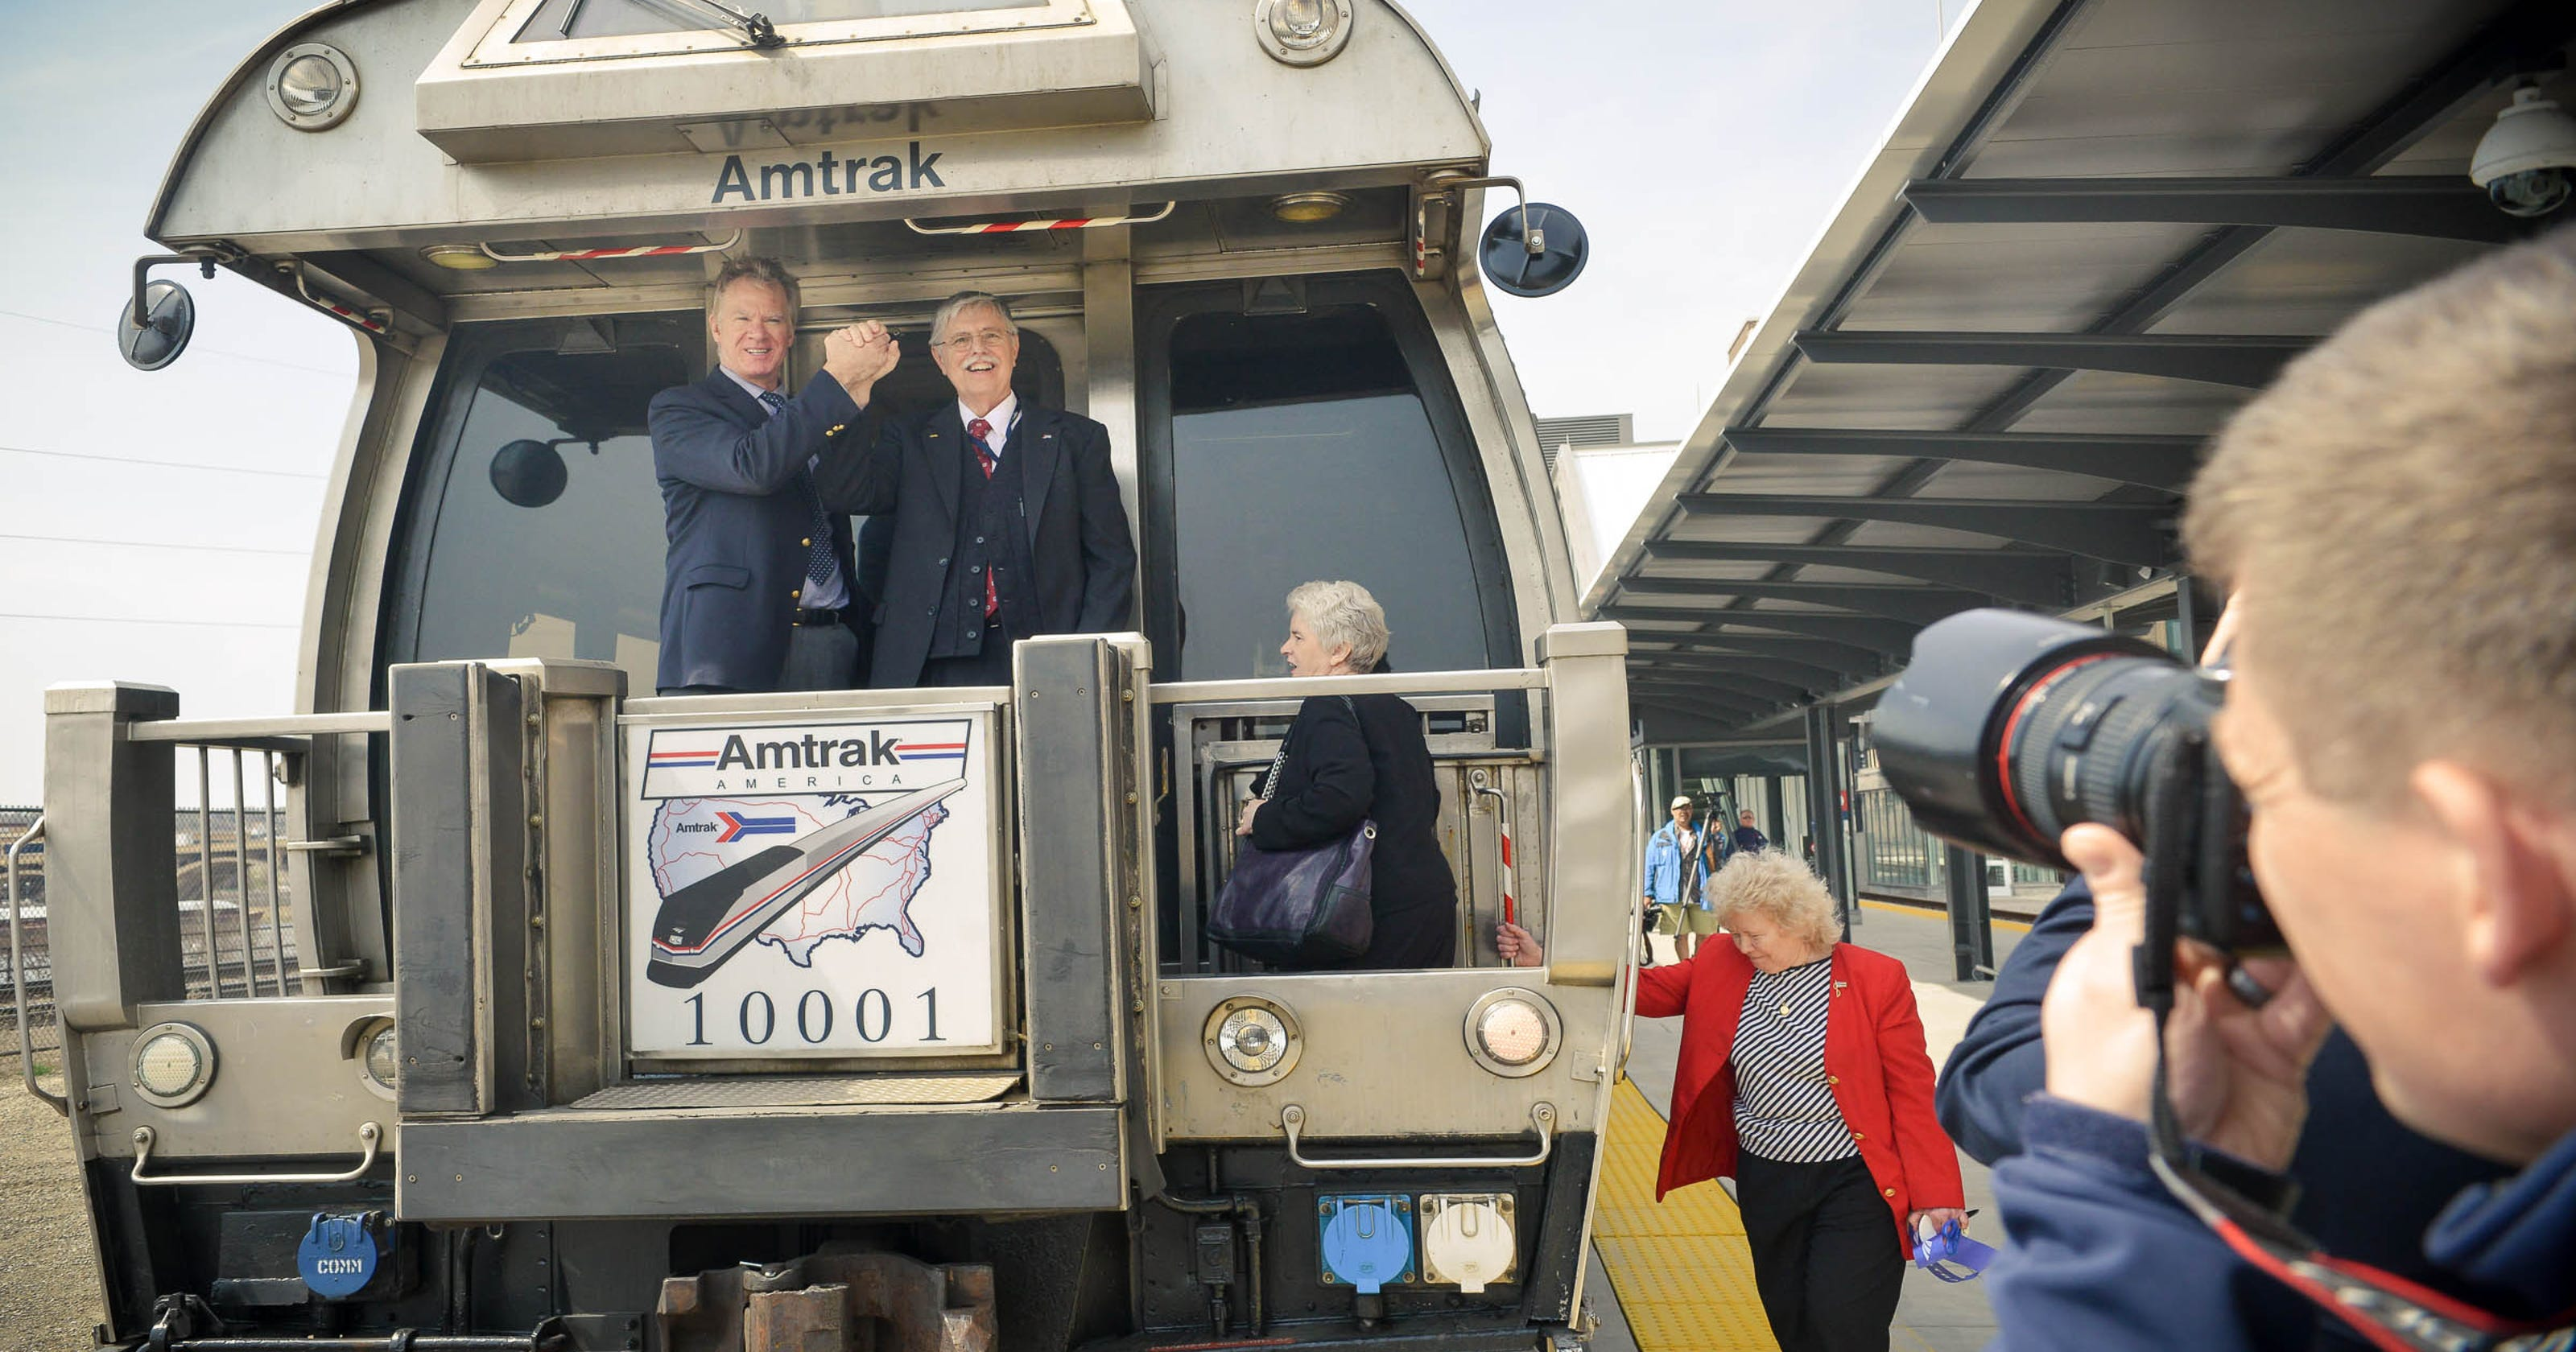 Amtrak's arrival at St  Paul Union Depot celebrated